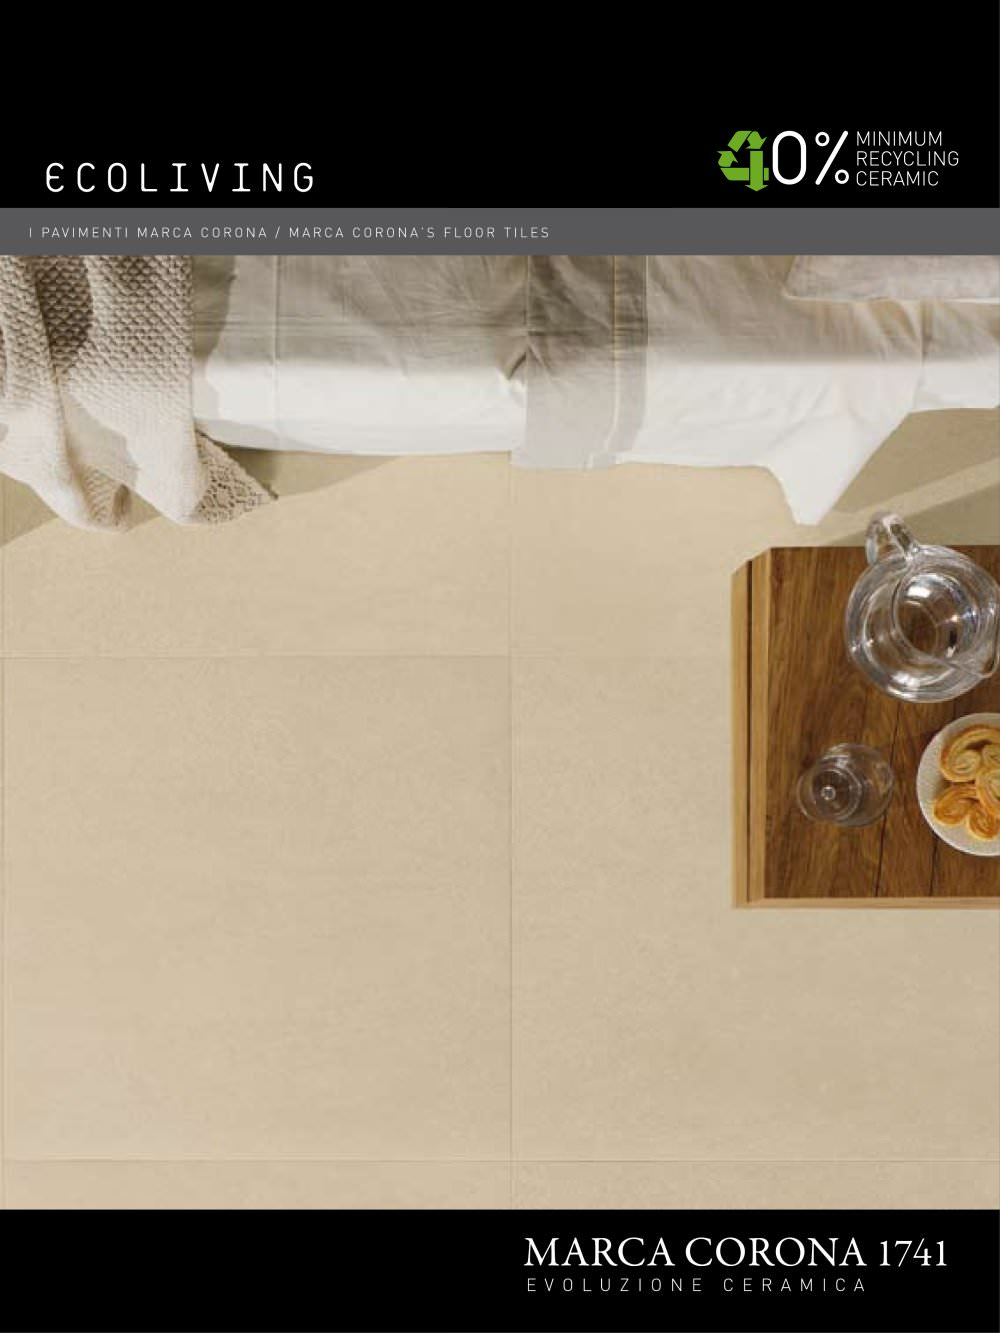 Ecoliving 40 minimum recycling ceramic ceramiche marca corona ecoliving 40 minimum recycling ceramic 1 27 pages dailygadgetfo Images